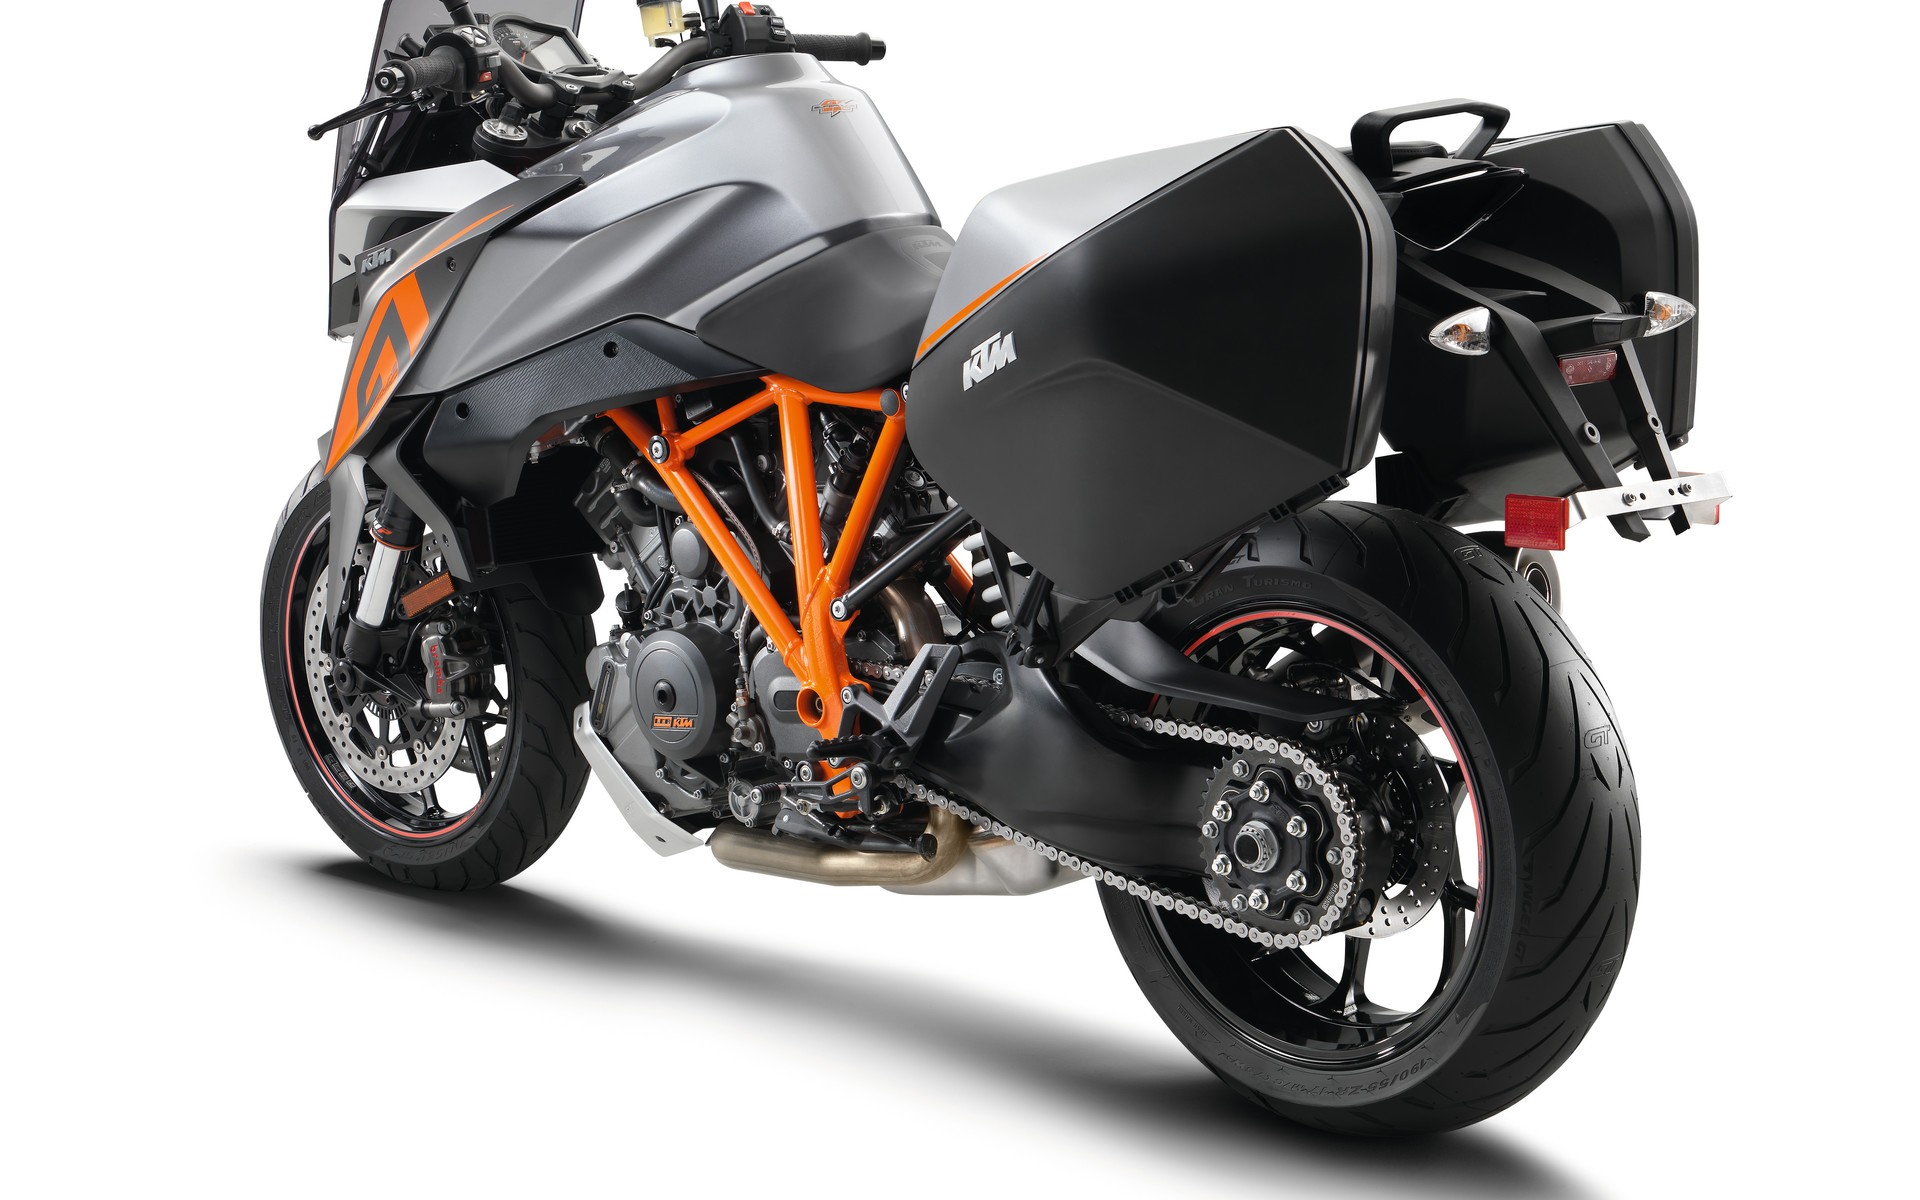 2016 ktm 1290 super duke gt picture galore - autoevolution